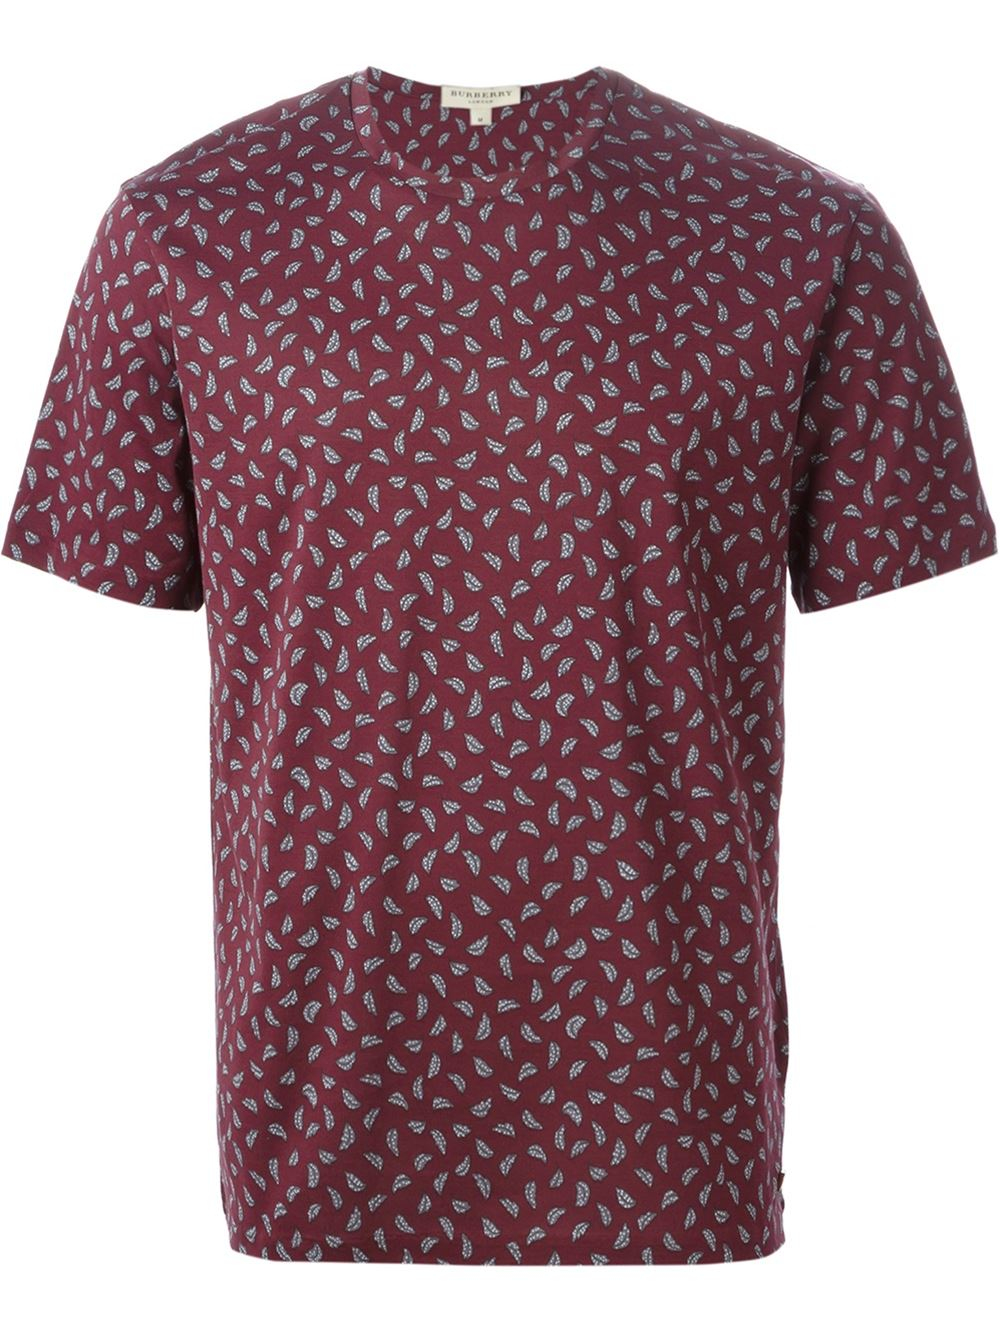 Burberry all over leaf print t shirt in red for men lyst for All over printing t shirts